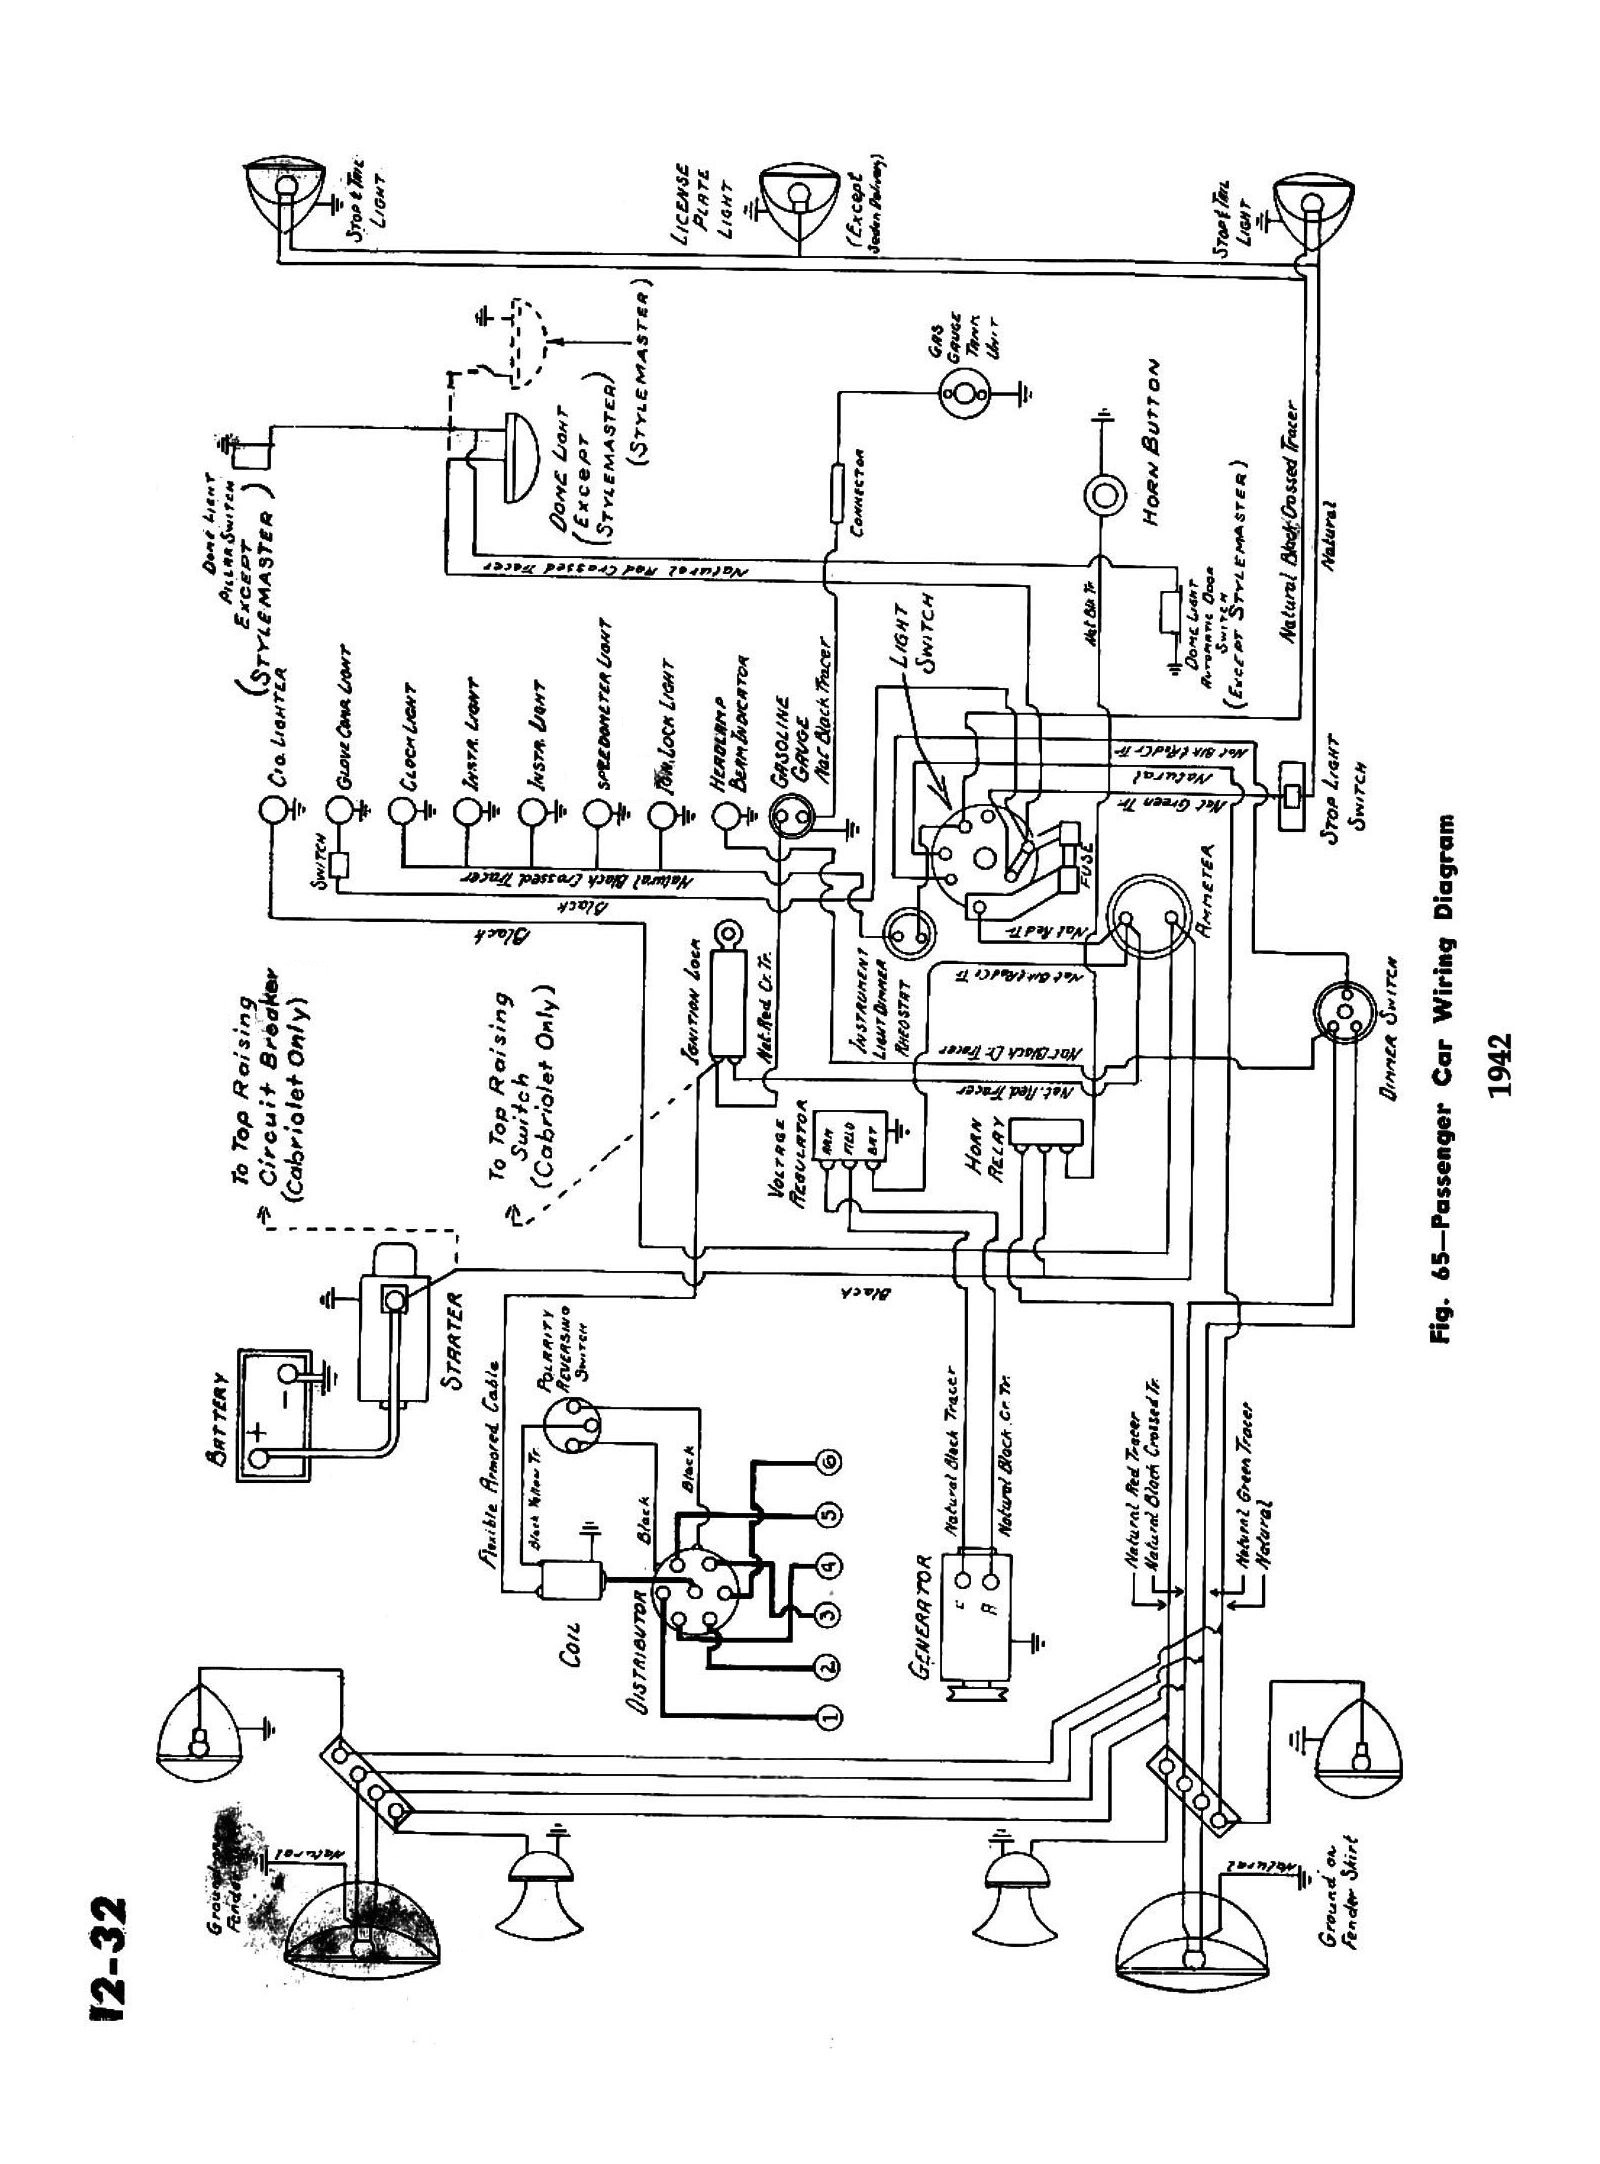 1950 Chevy Distributor Wiring Guide And Troubleshooting Of Small Block Diagrams Rh Oldcarmanualproject Com Ecm Connectors